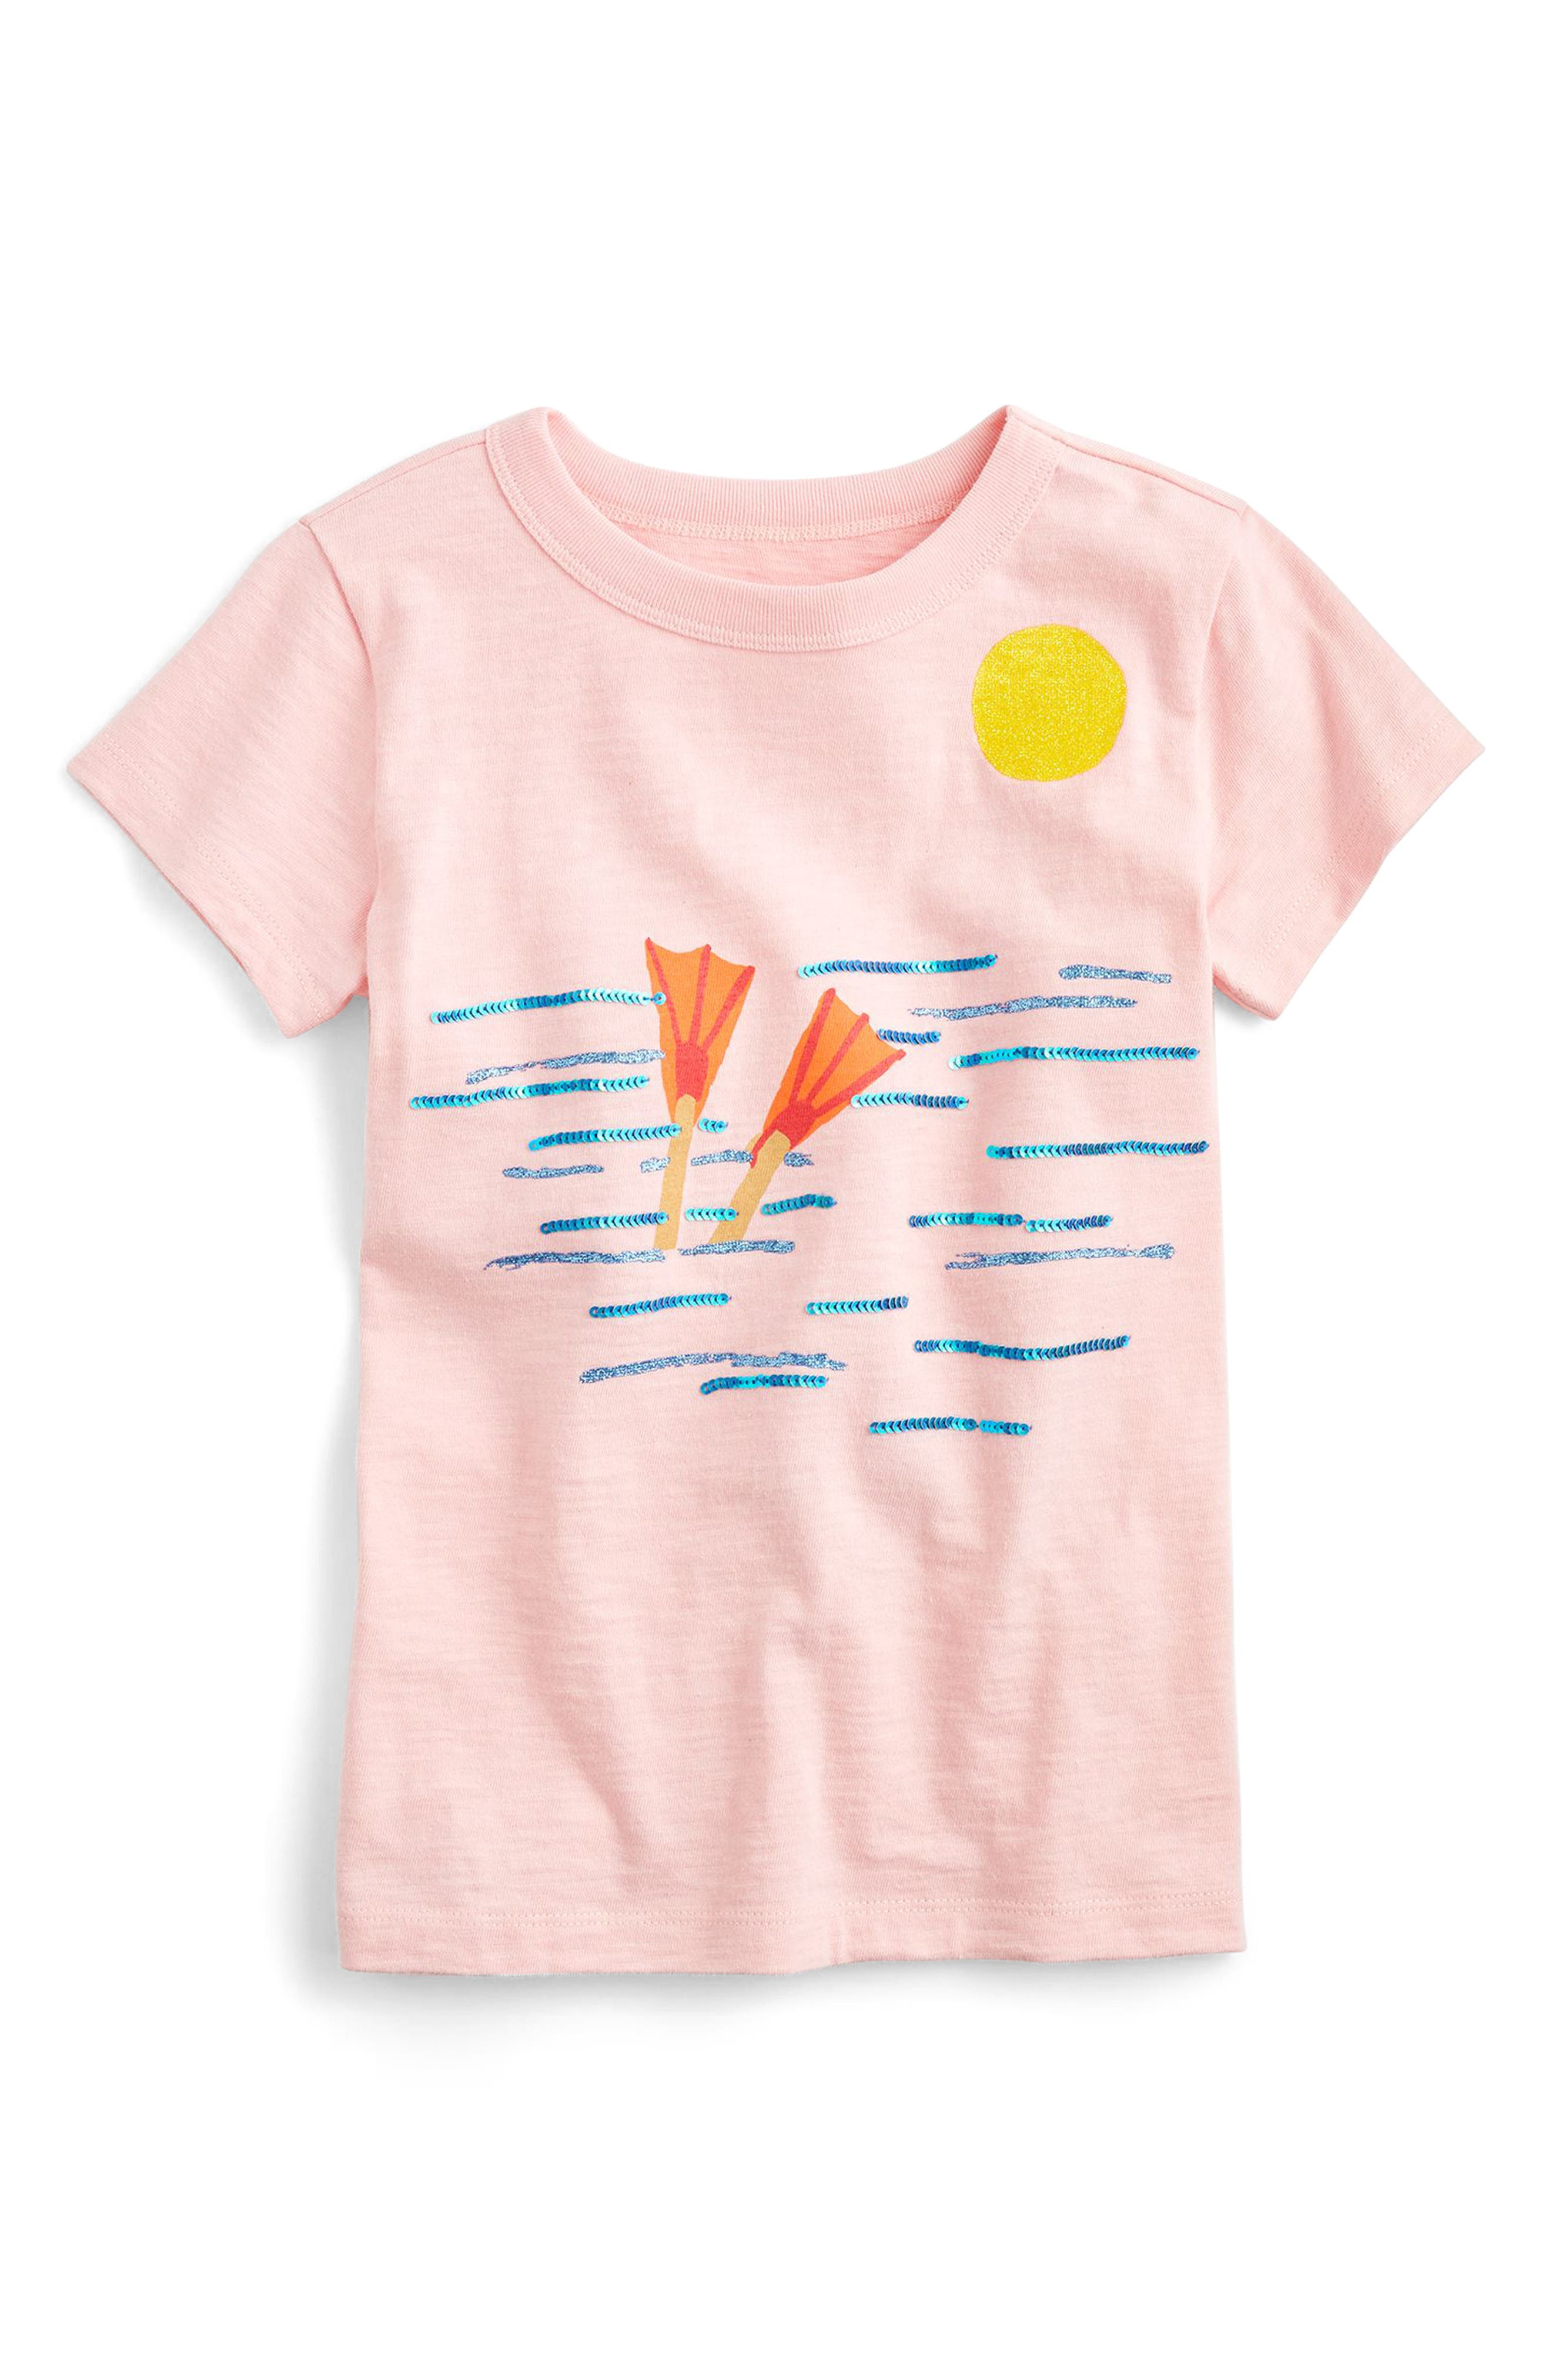 crewcuts by J. Crew Diver Cotton Tee (Toddler Girls, Little Girls & Big Girls)